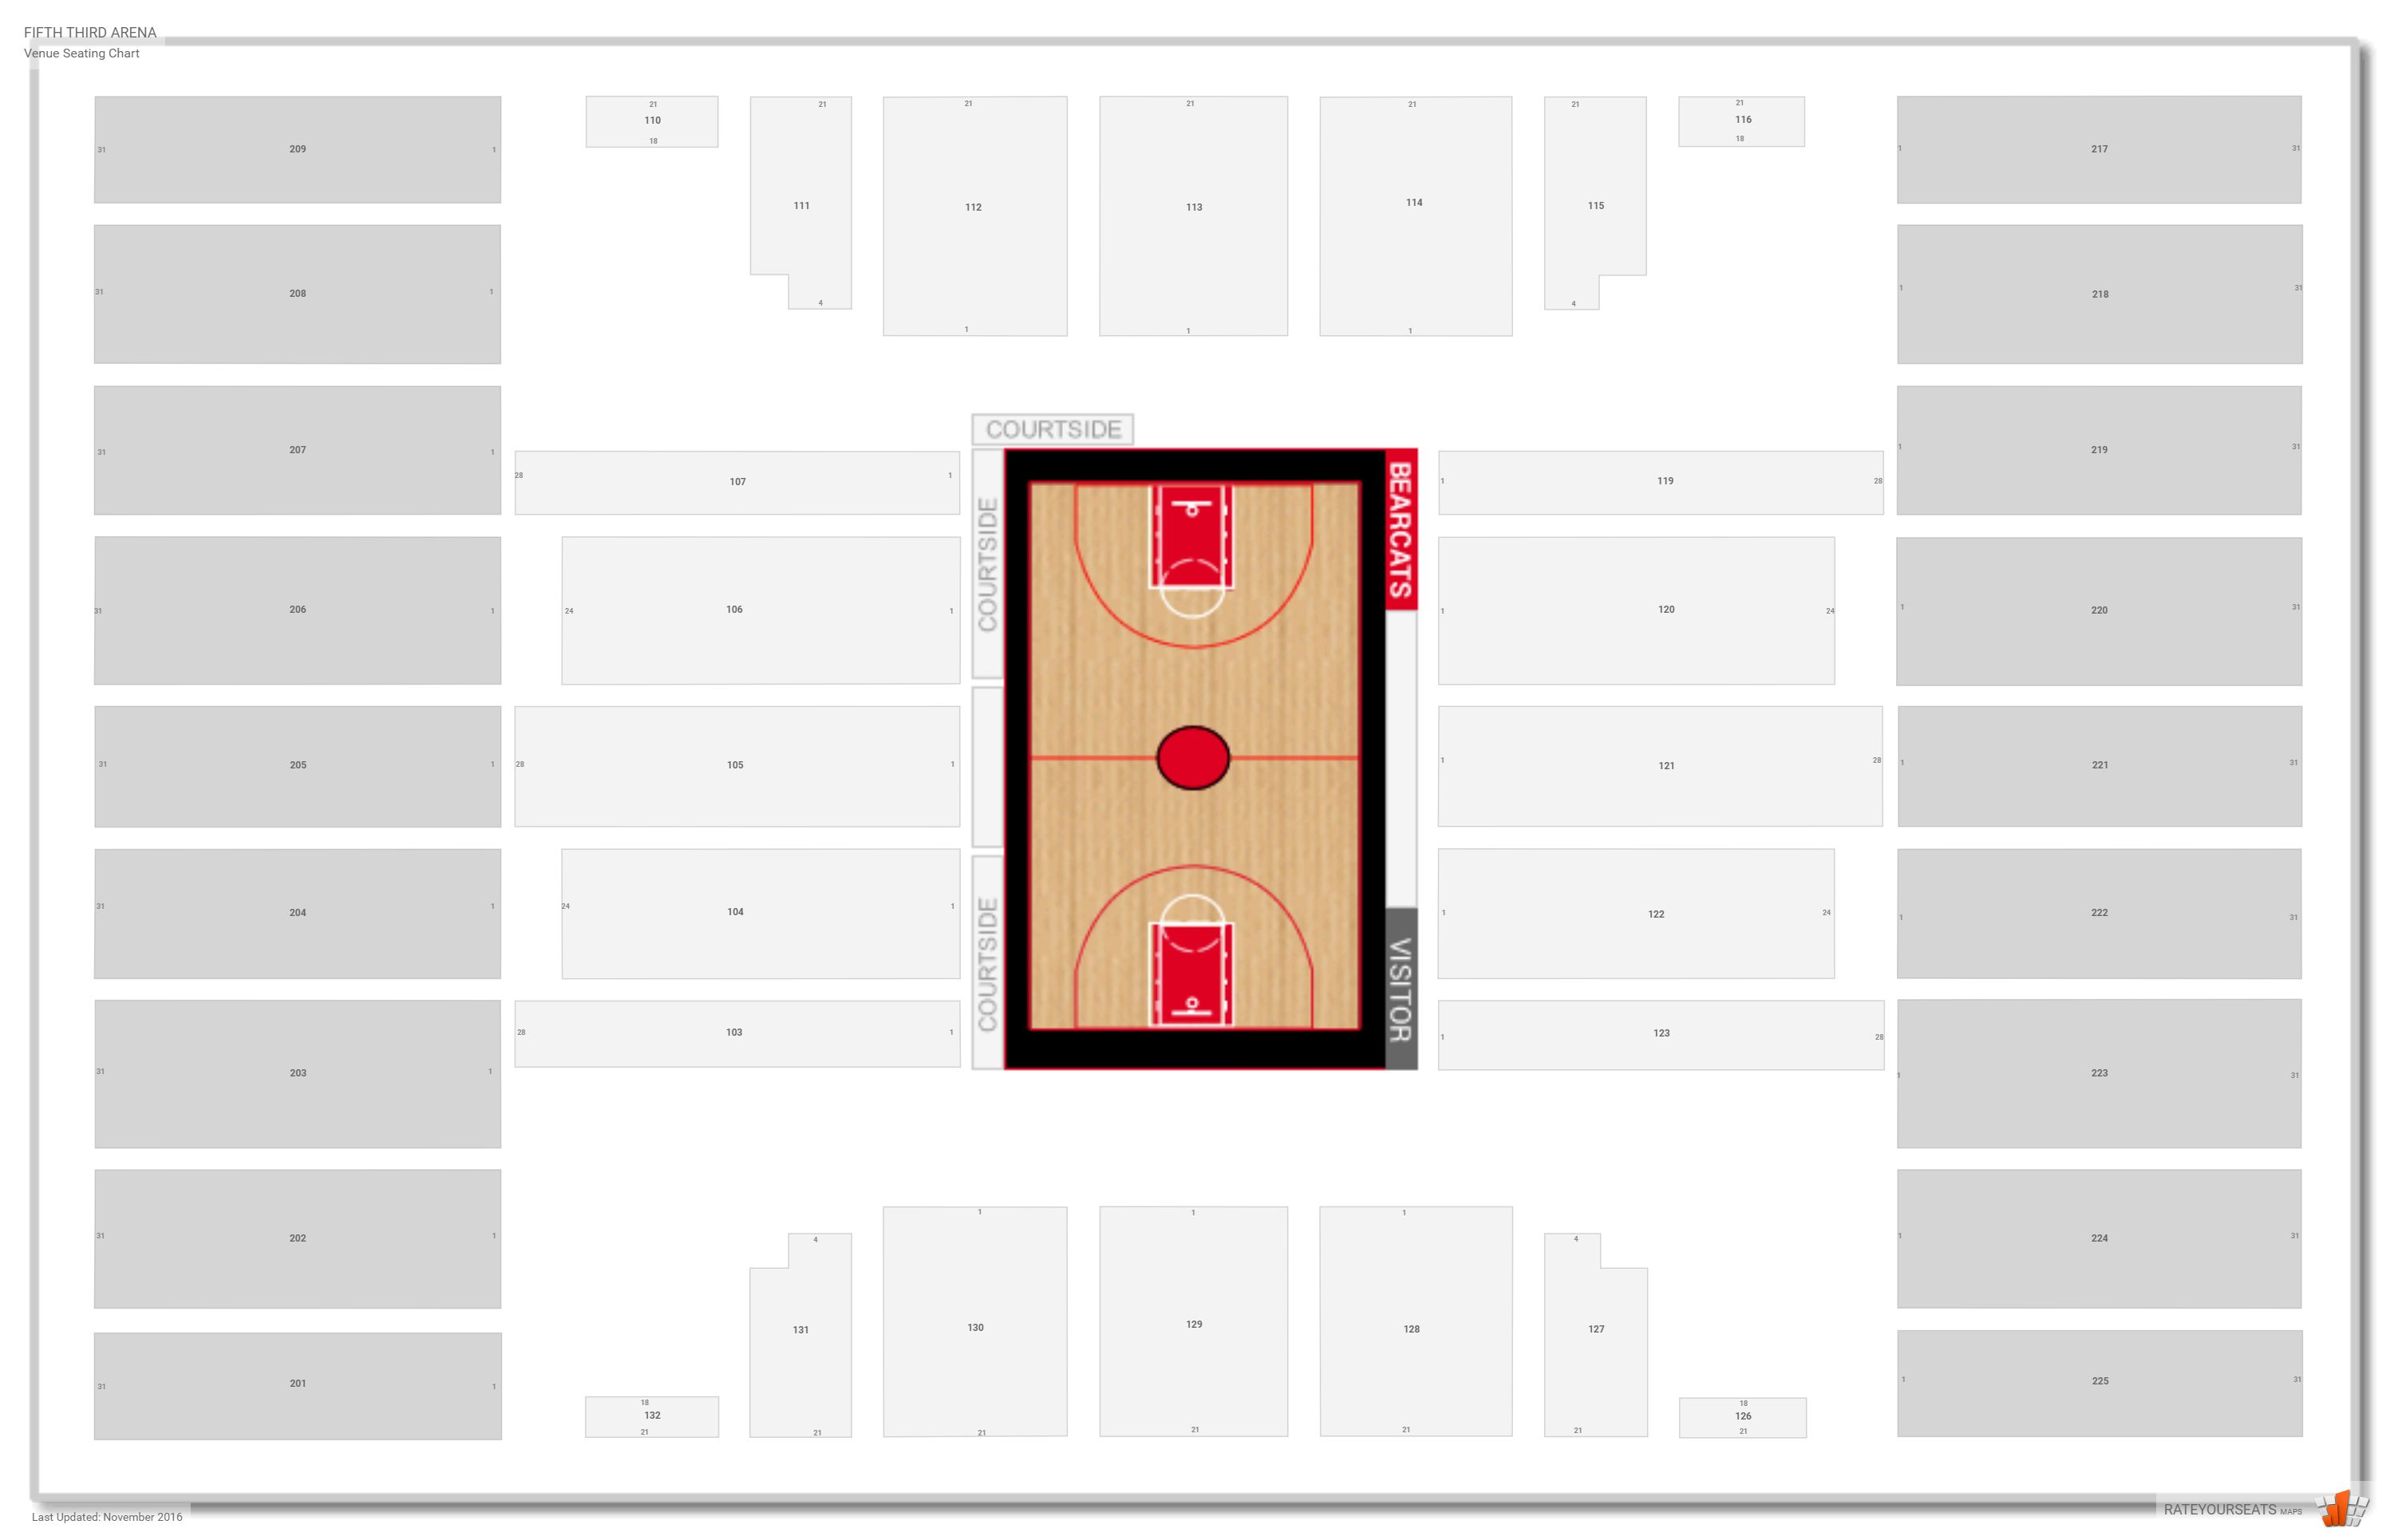 Fifth third arena cincinnati seating guide rateyourseats com